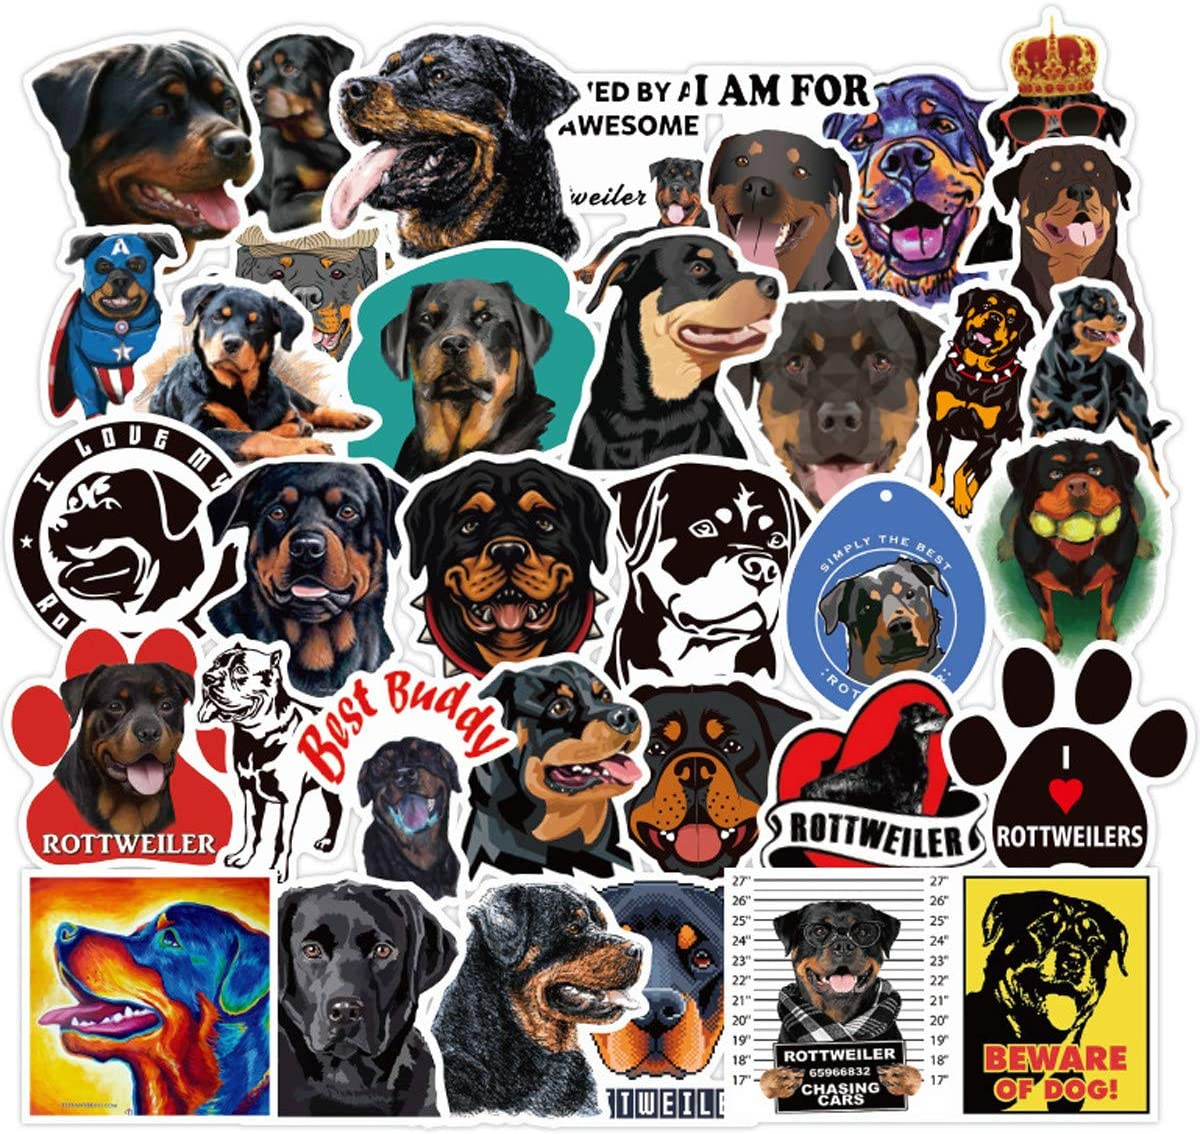 Lovely Rottweiler Stickers (50 PCS) Pet Dog Funny Stickers for Teens, Girls, Adults,Kids - Stickers for Waterbottles,Laptop,Phone,Hydro Flask - Waterproof Vinyl Sticker (Rottweiler)